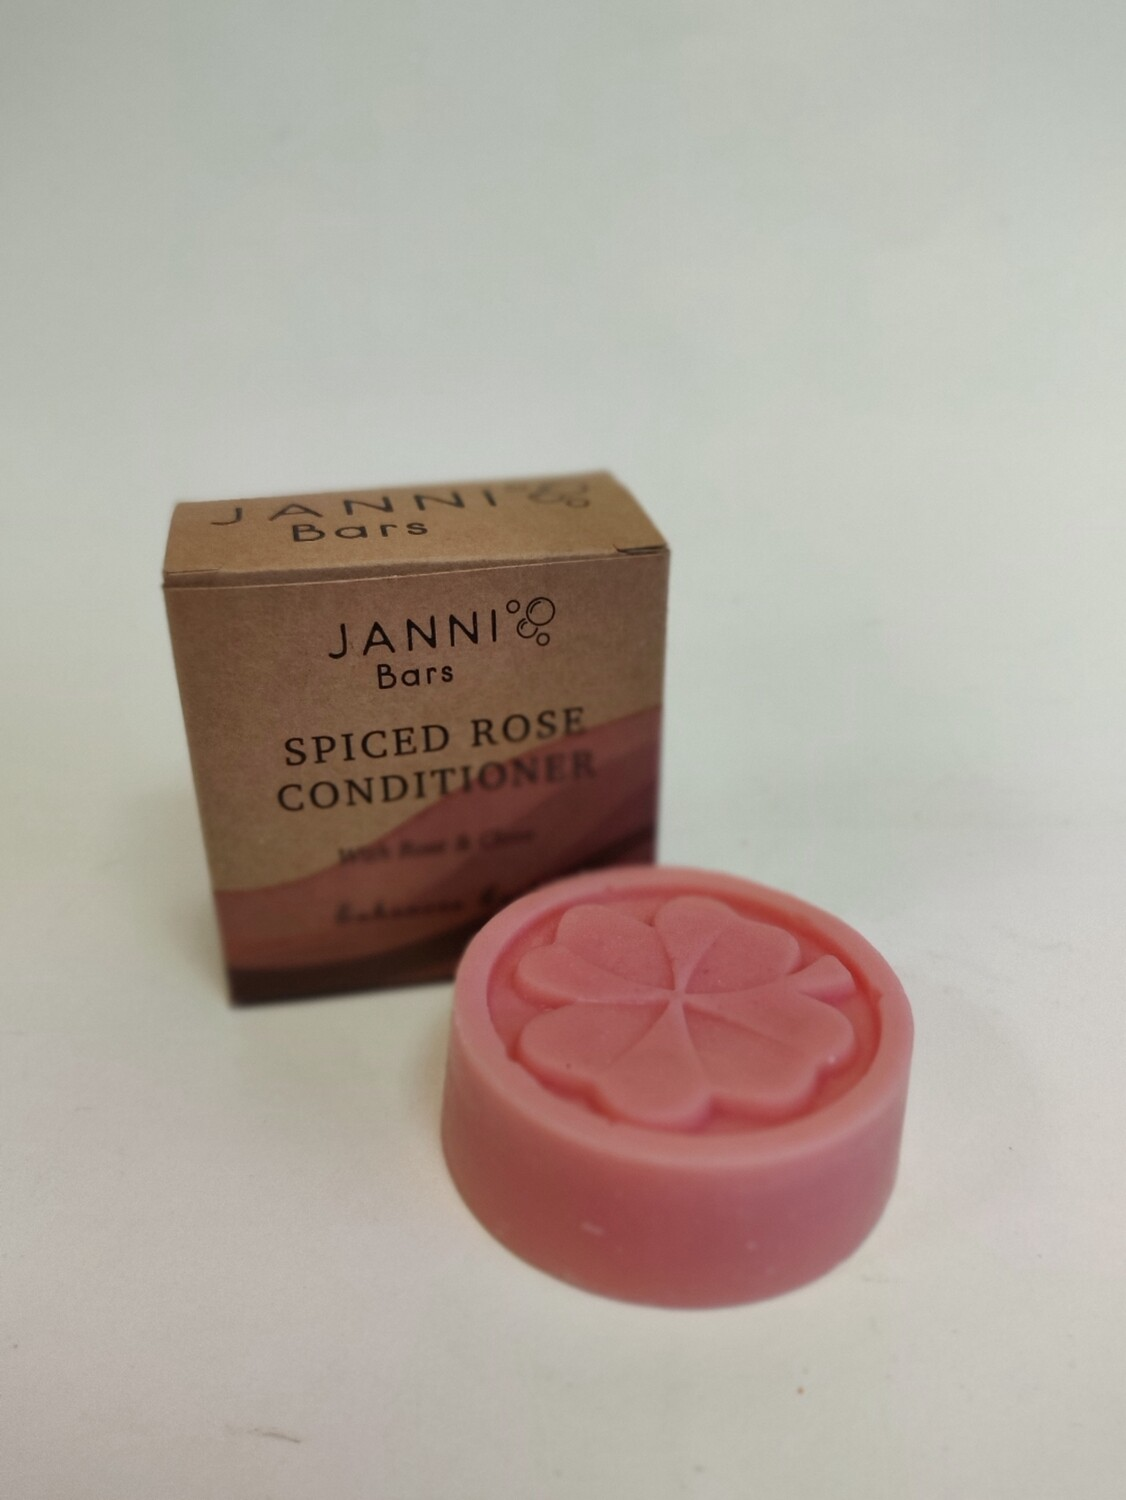 Janni Bars Spiced Rose Conditioner